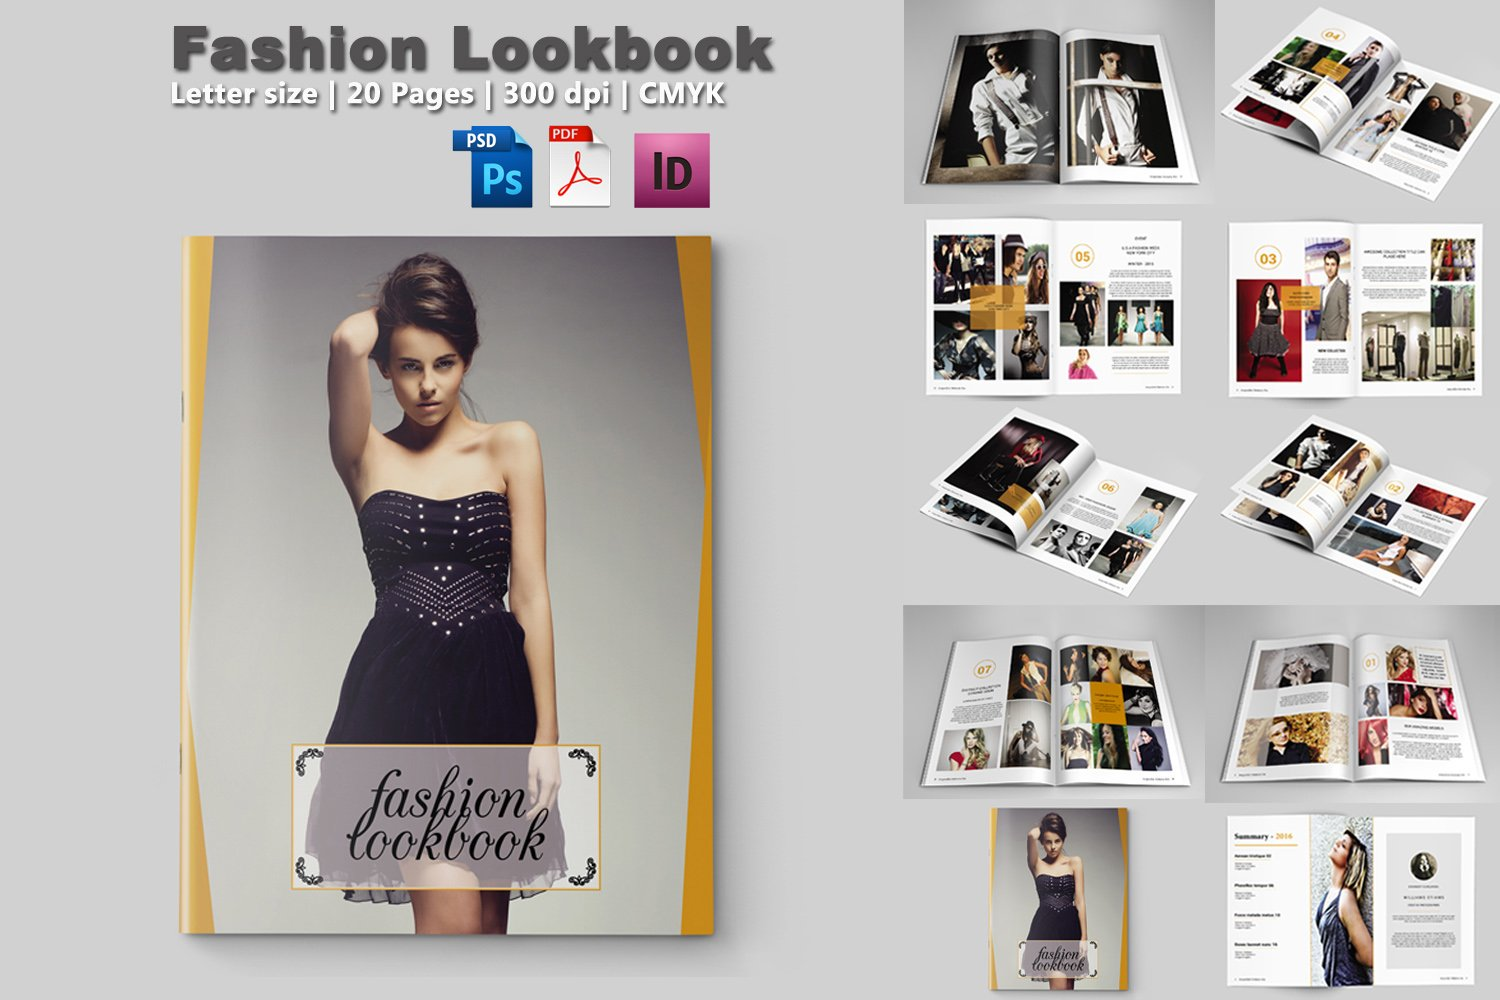 Fashion Designer Lookbook Pdf